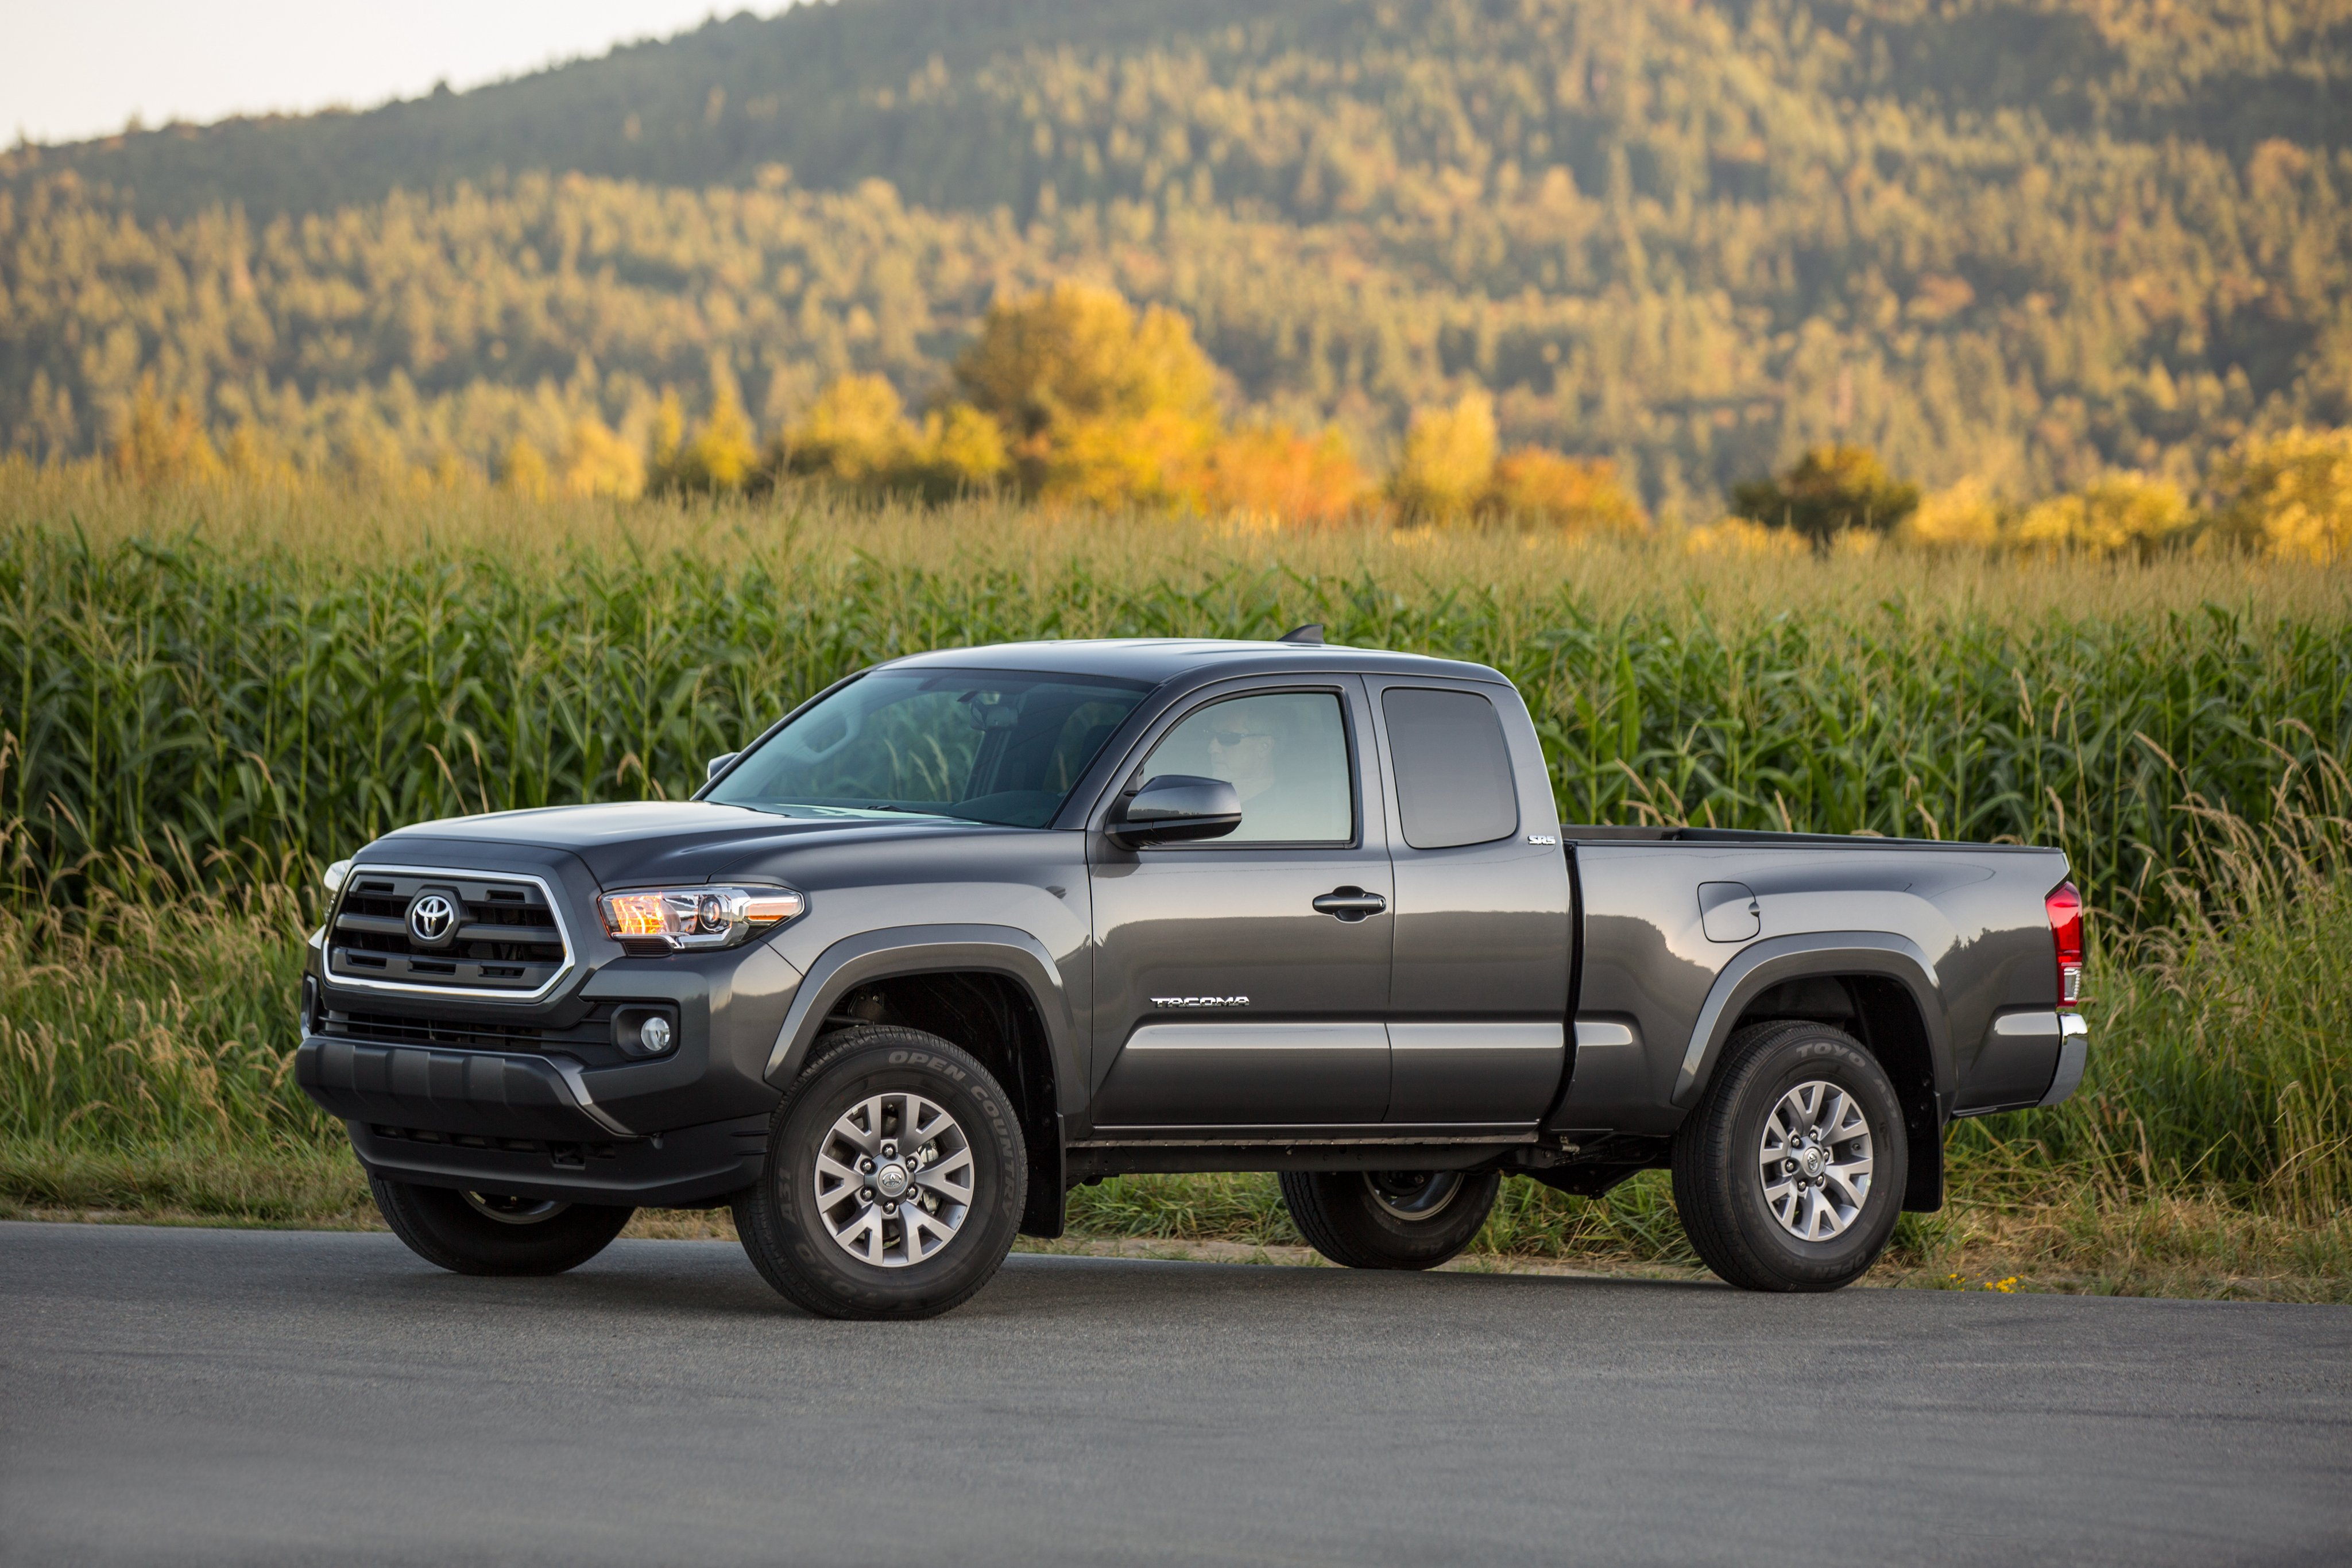 2016 toyota tacoma sr5 access cab 4x4 pickup wallpaper 4096x2731 782632 wallpaperup. Black Bedroom Furniture Sets. Home Design Ideas